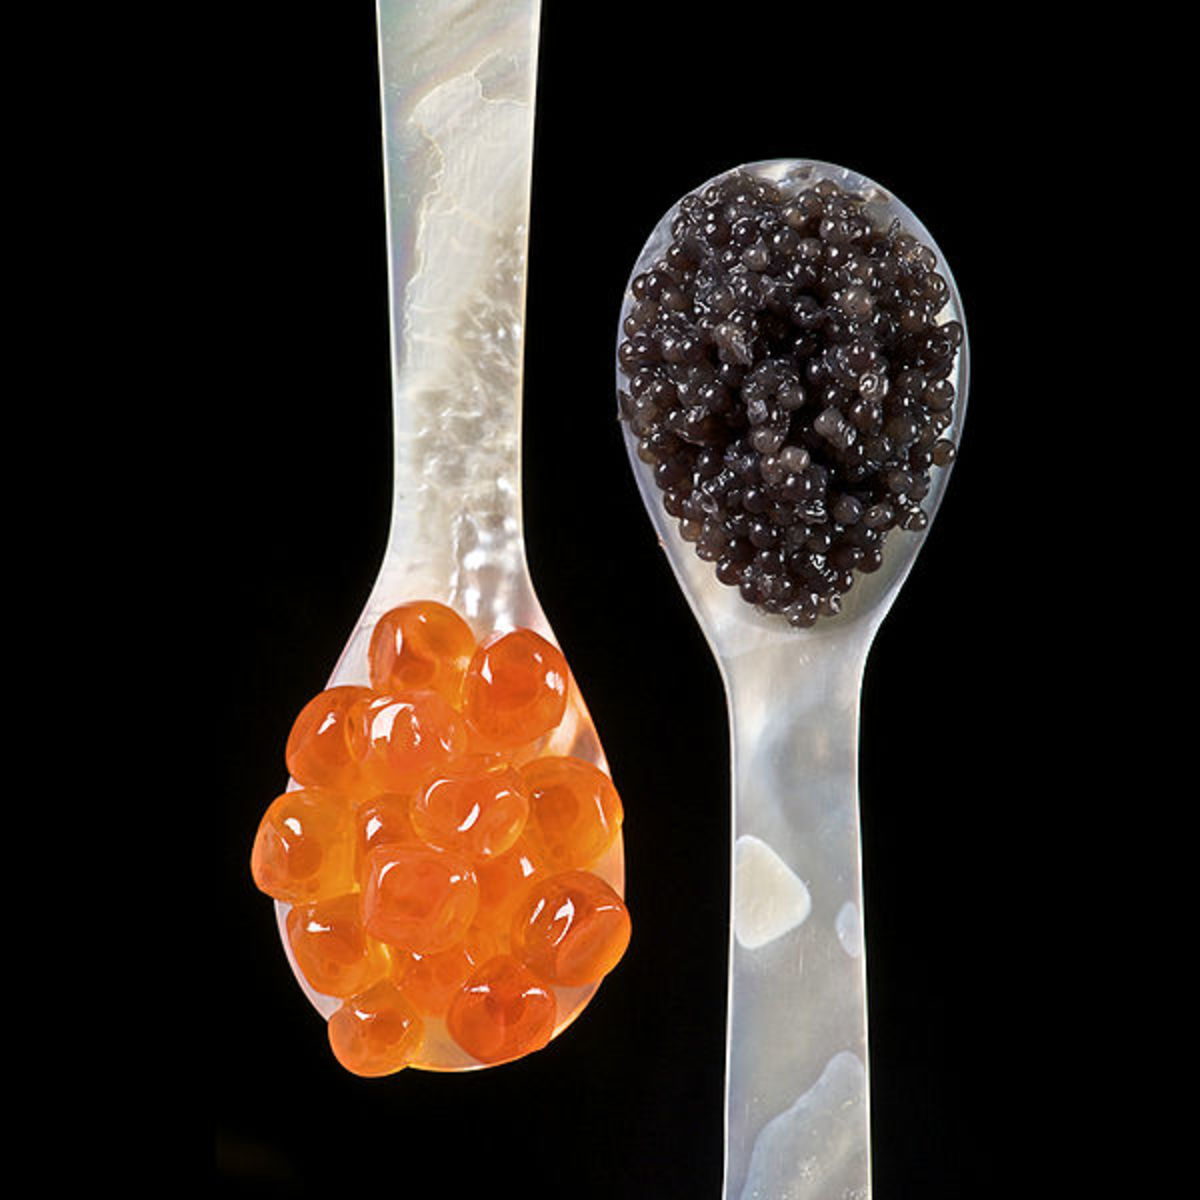 What Is the Most Expensive Caviar in the World?